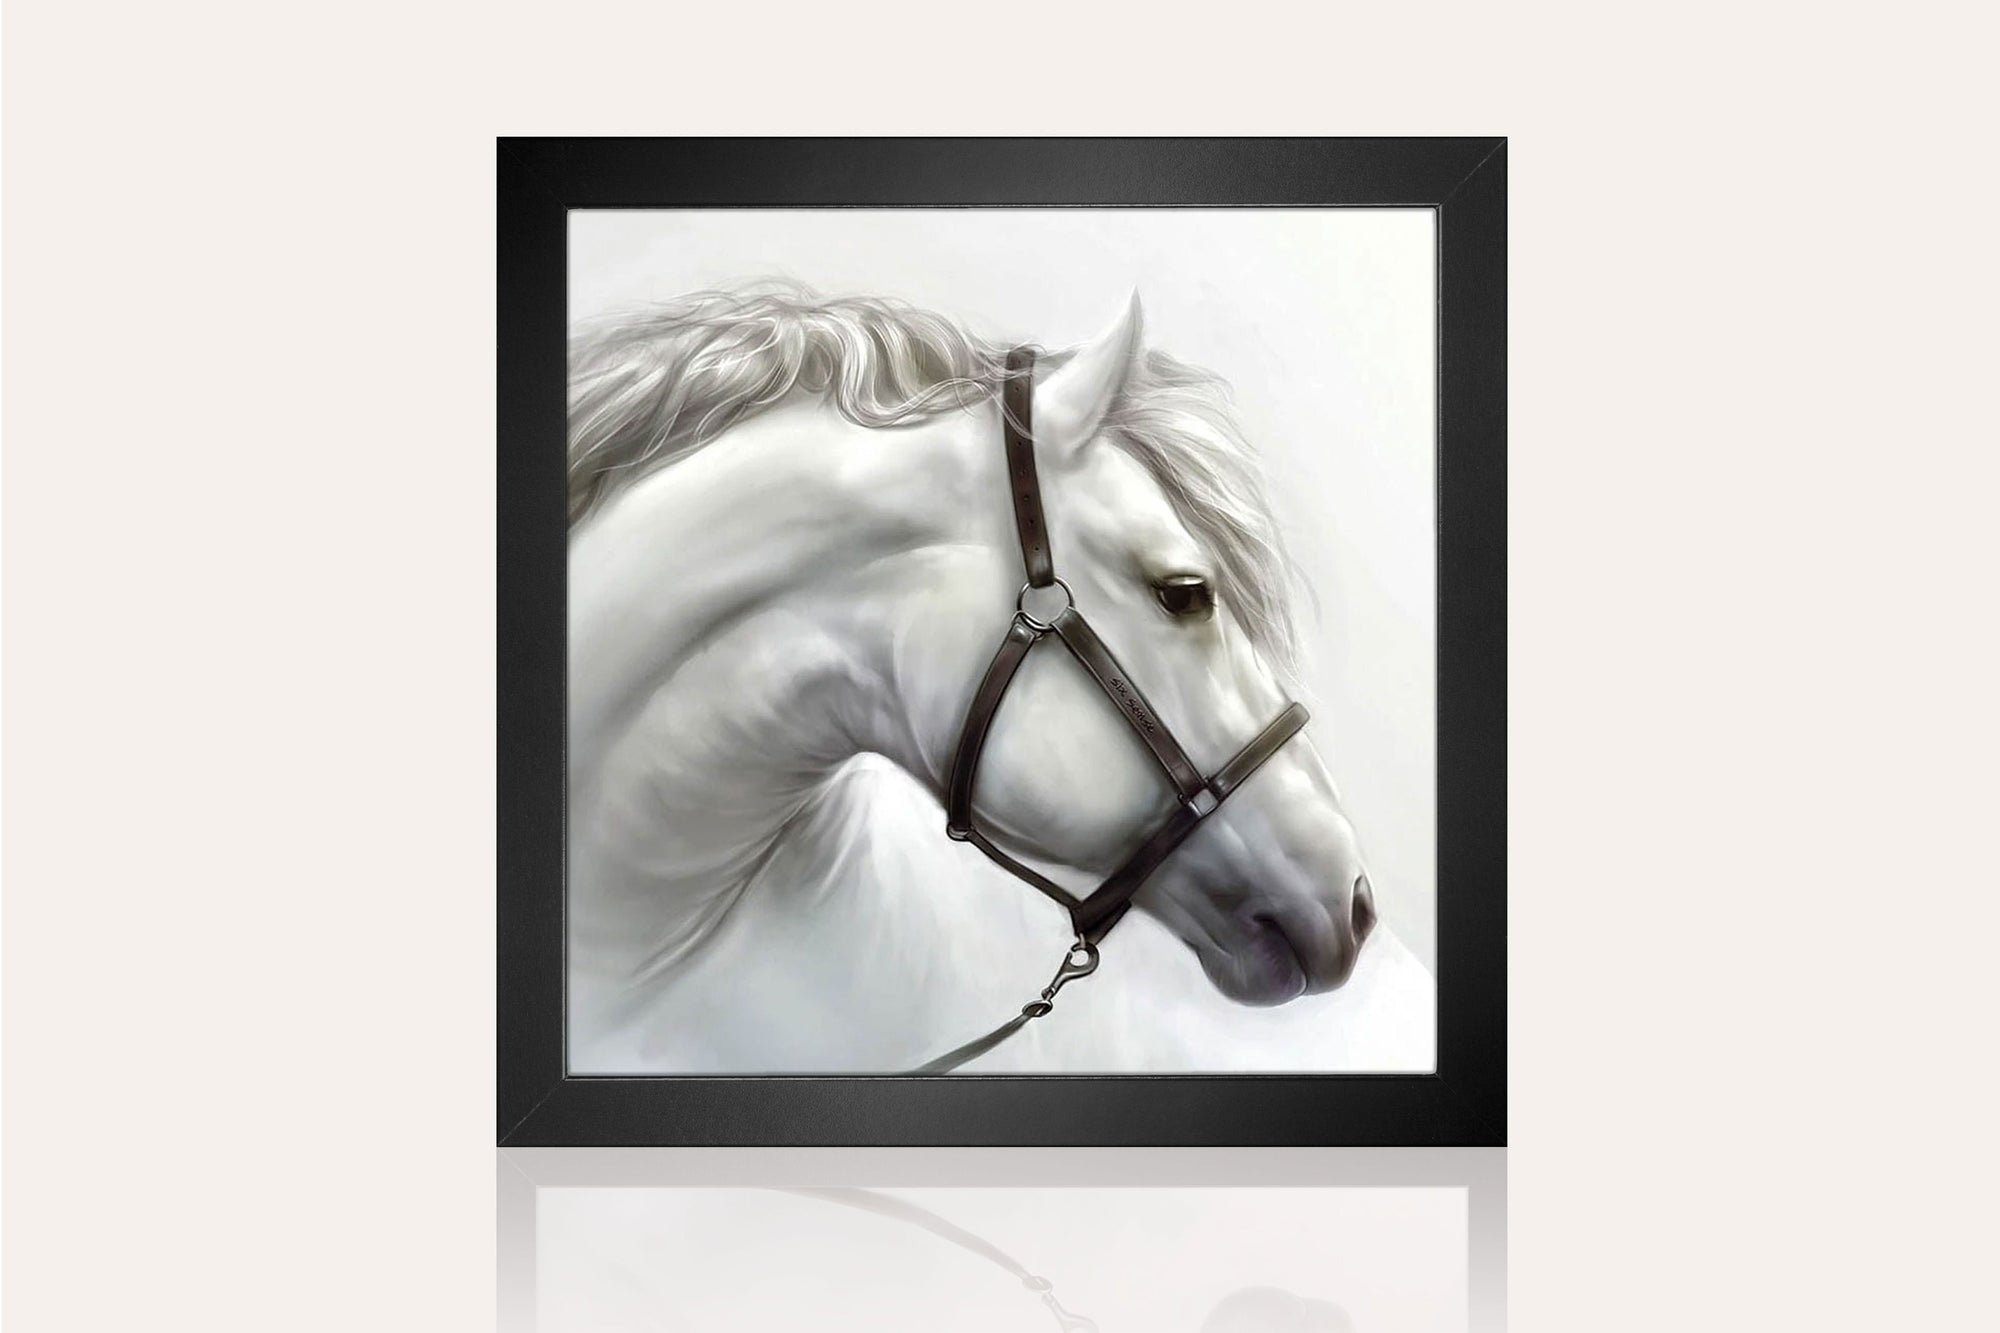 The White Horse Acrylic Wall Art by Venini